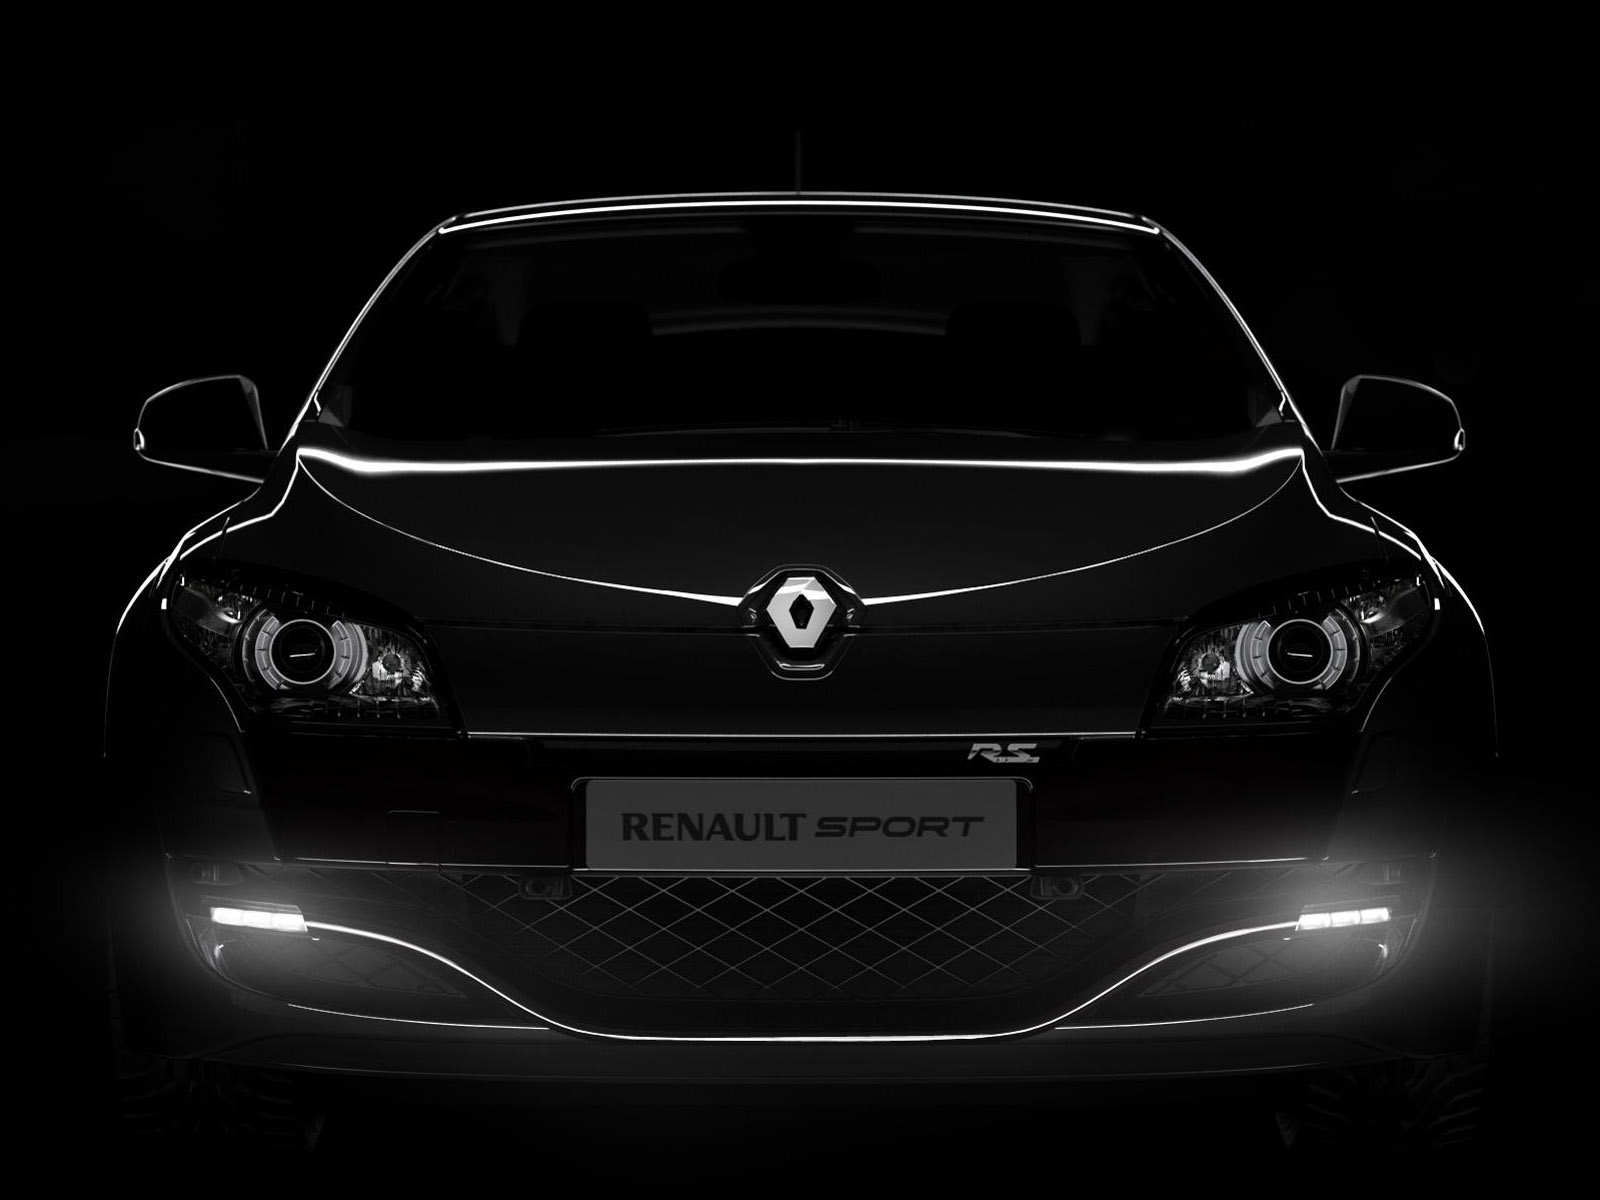 1600x1200 - Renault RS Wallpapers 8